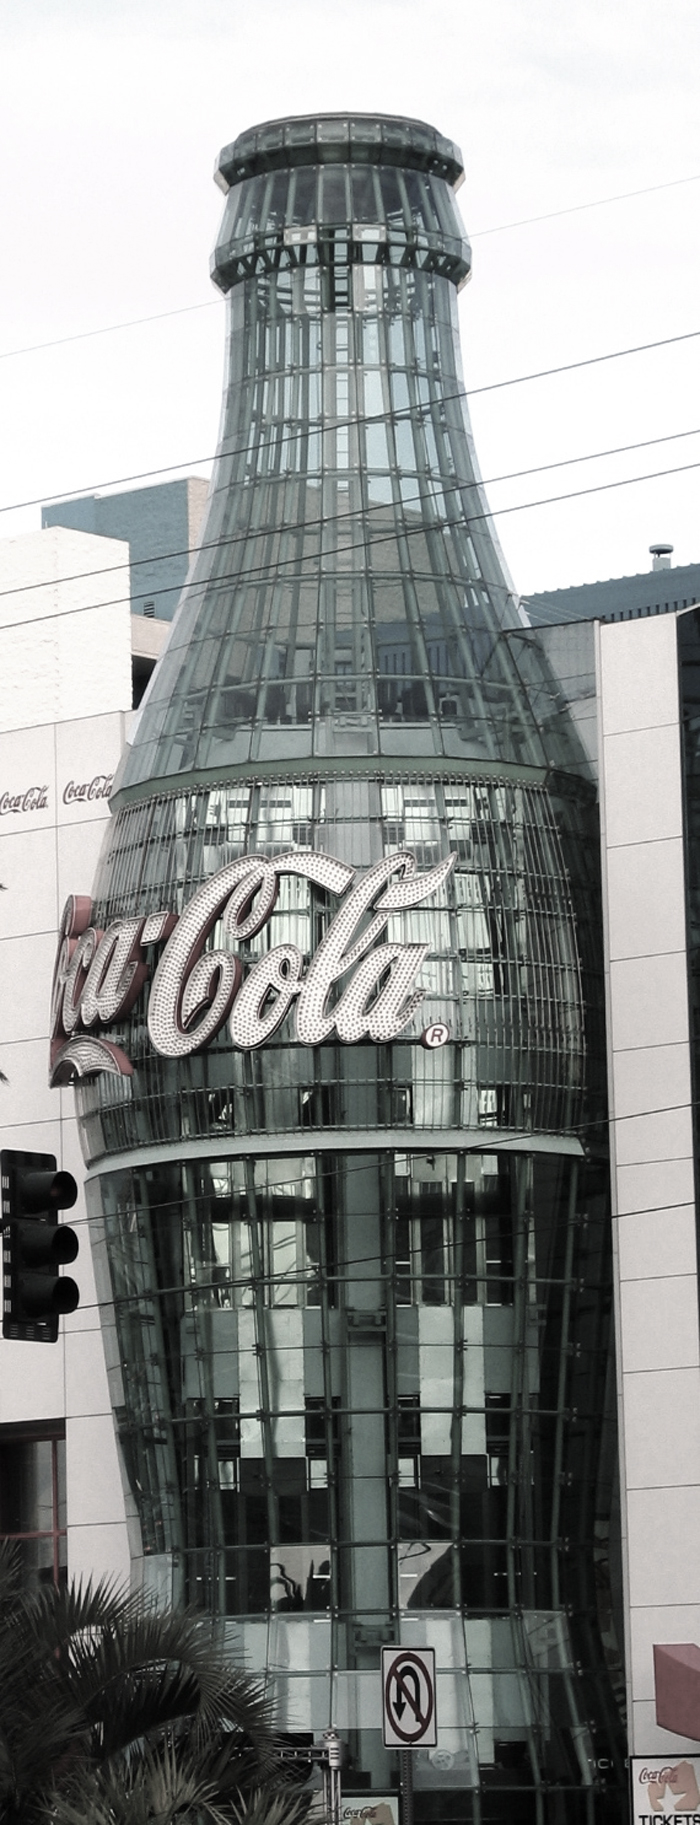 The-World-of-Coca-Cola,-Pemberton-Place,-Atlanta,-USA